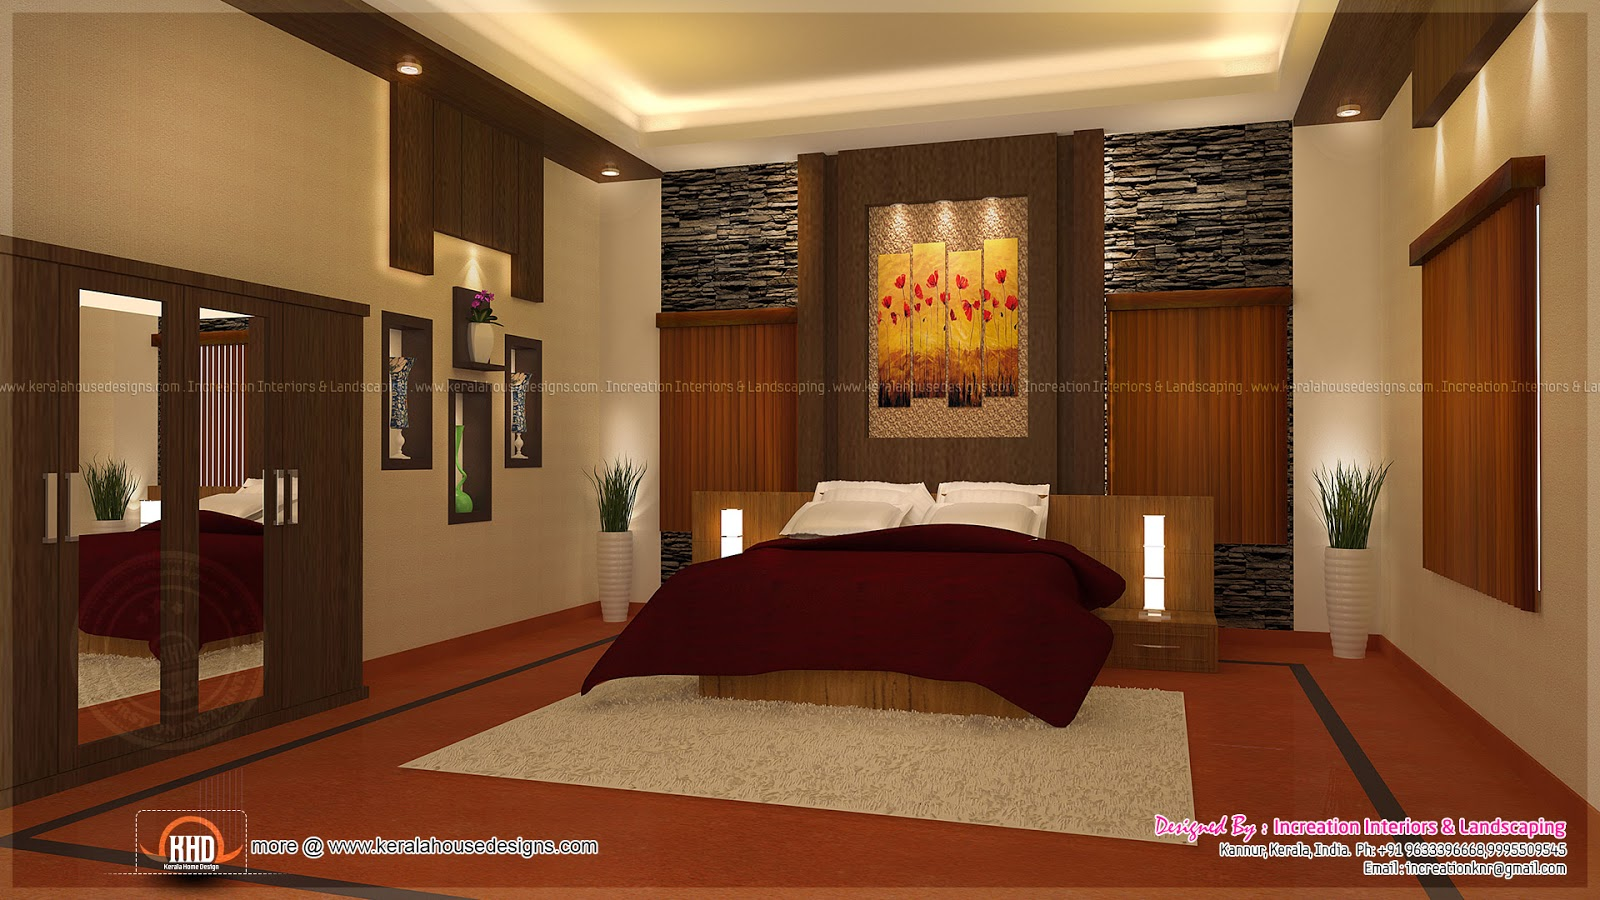 House interior ideas in 3d rendering home kerala plans for House plans interior photos